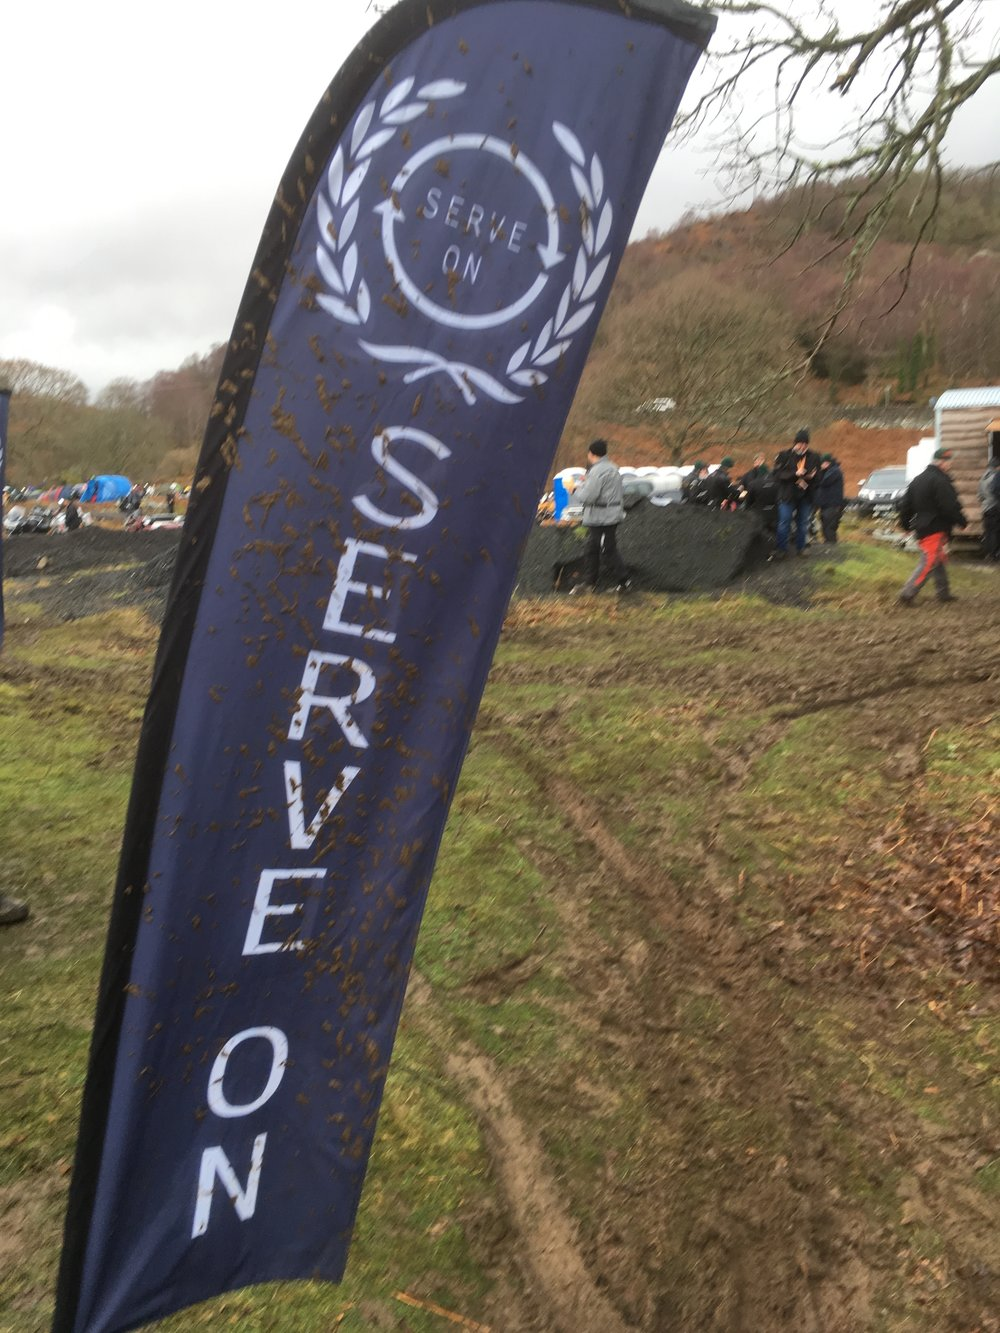 The mud-spattered Serve On flag still flew in spite of one of our disaster response tents being blown away by the gale force winds at the Dragon Rally in Snowdonia.